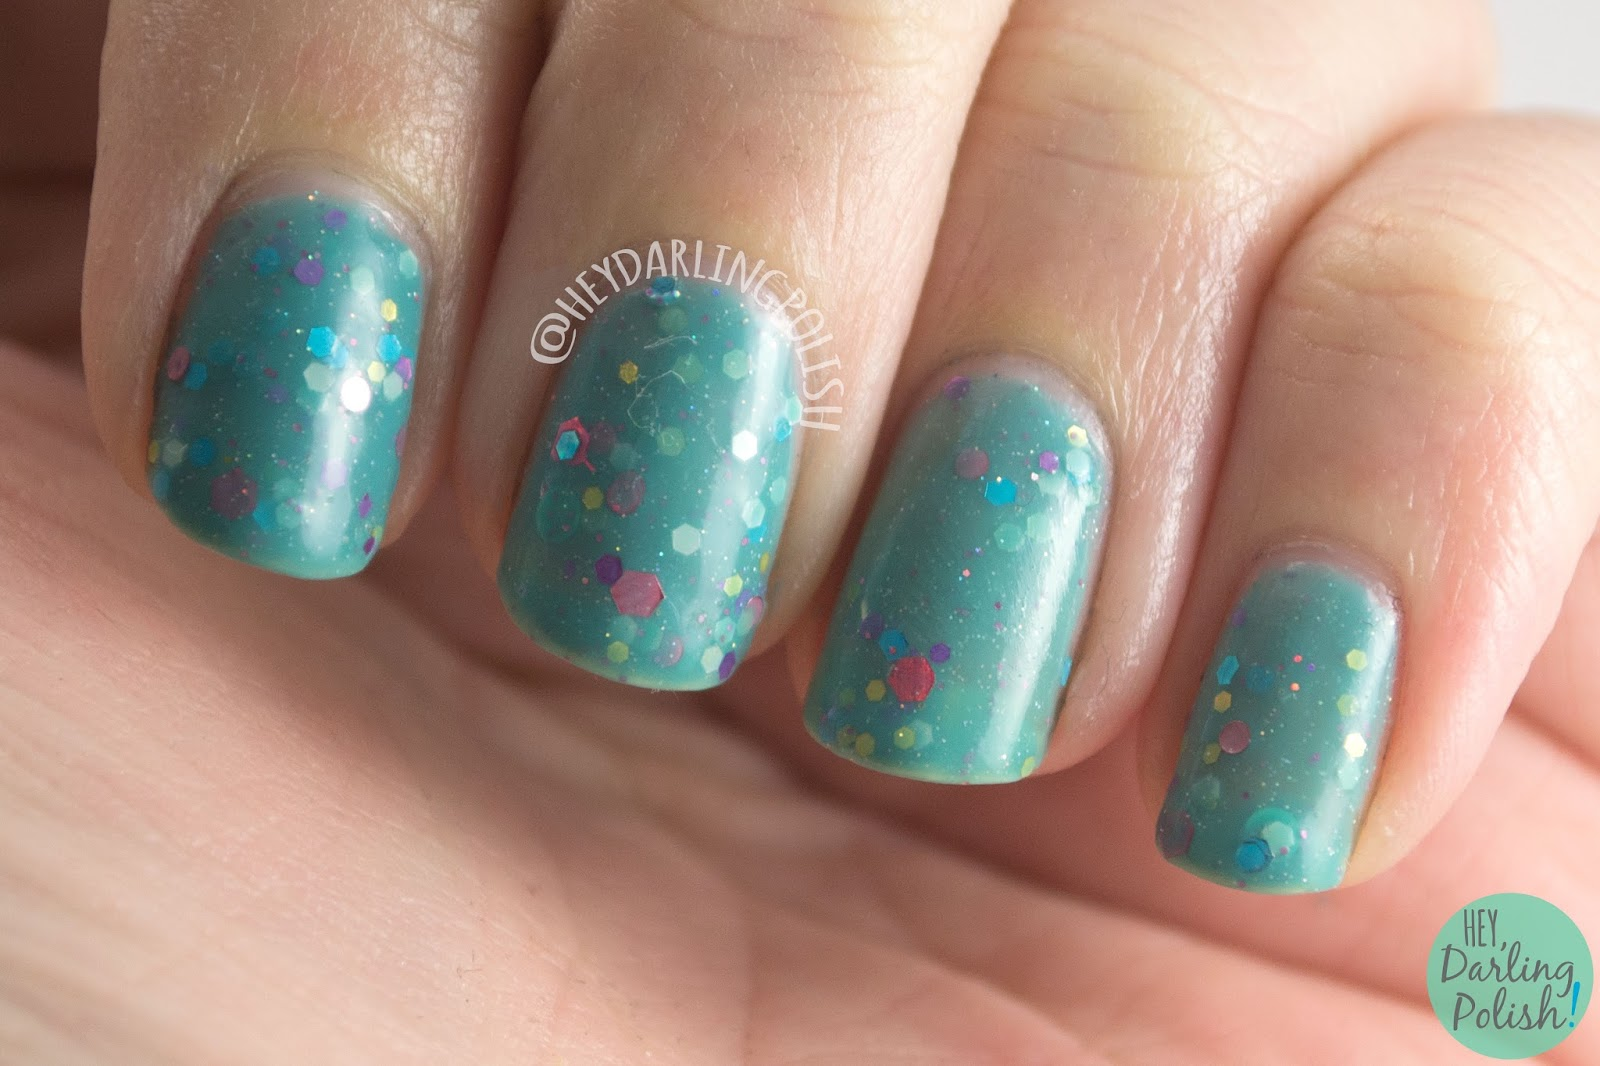 nails, nail polish, indie polish, kbshimmer, hey darling polish, glitter crelly, glitter, laugh myself lily, teal, swatch